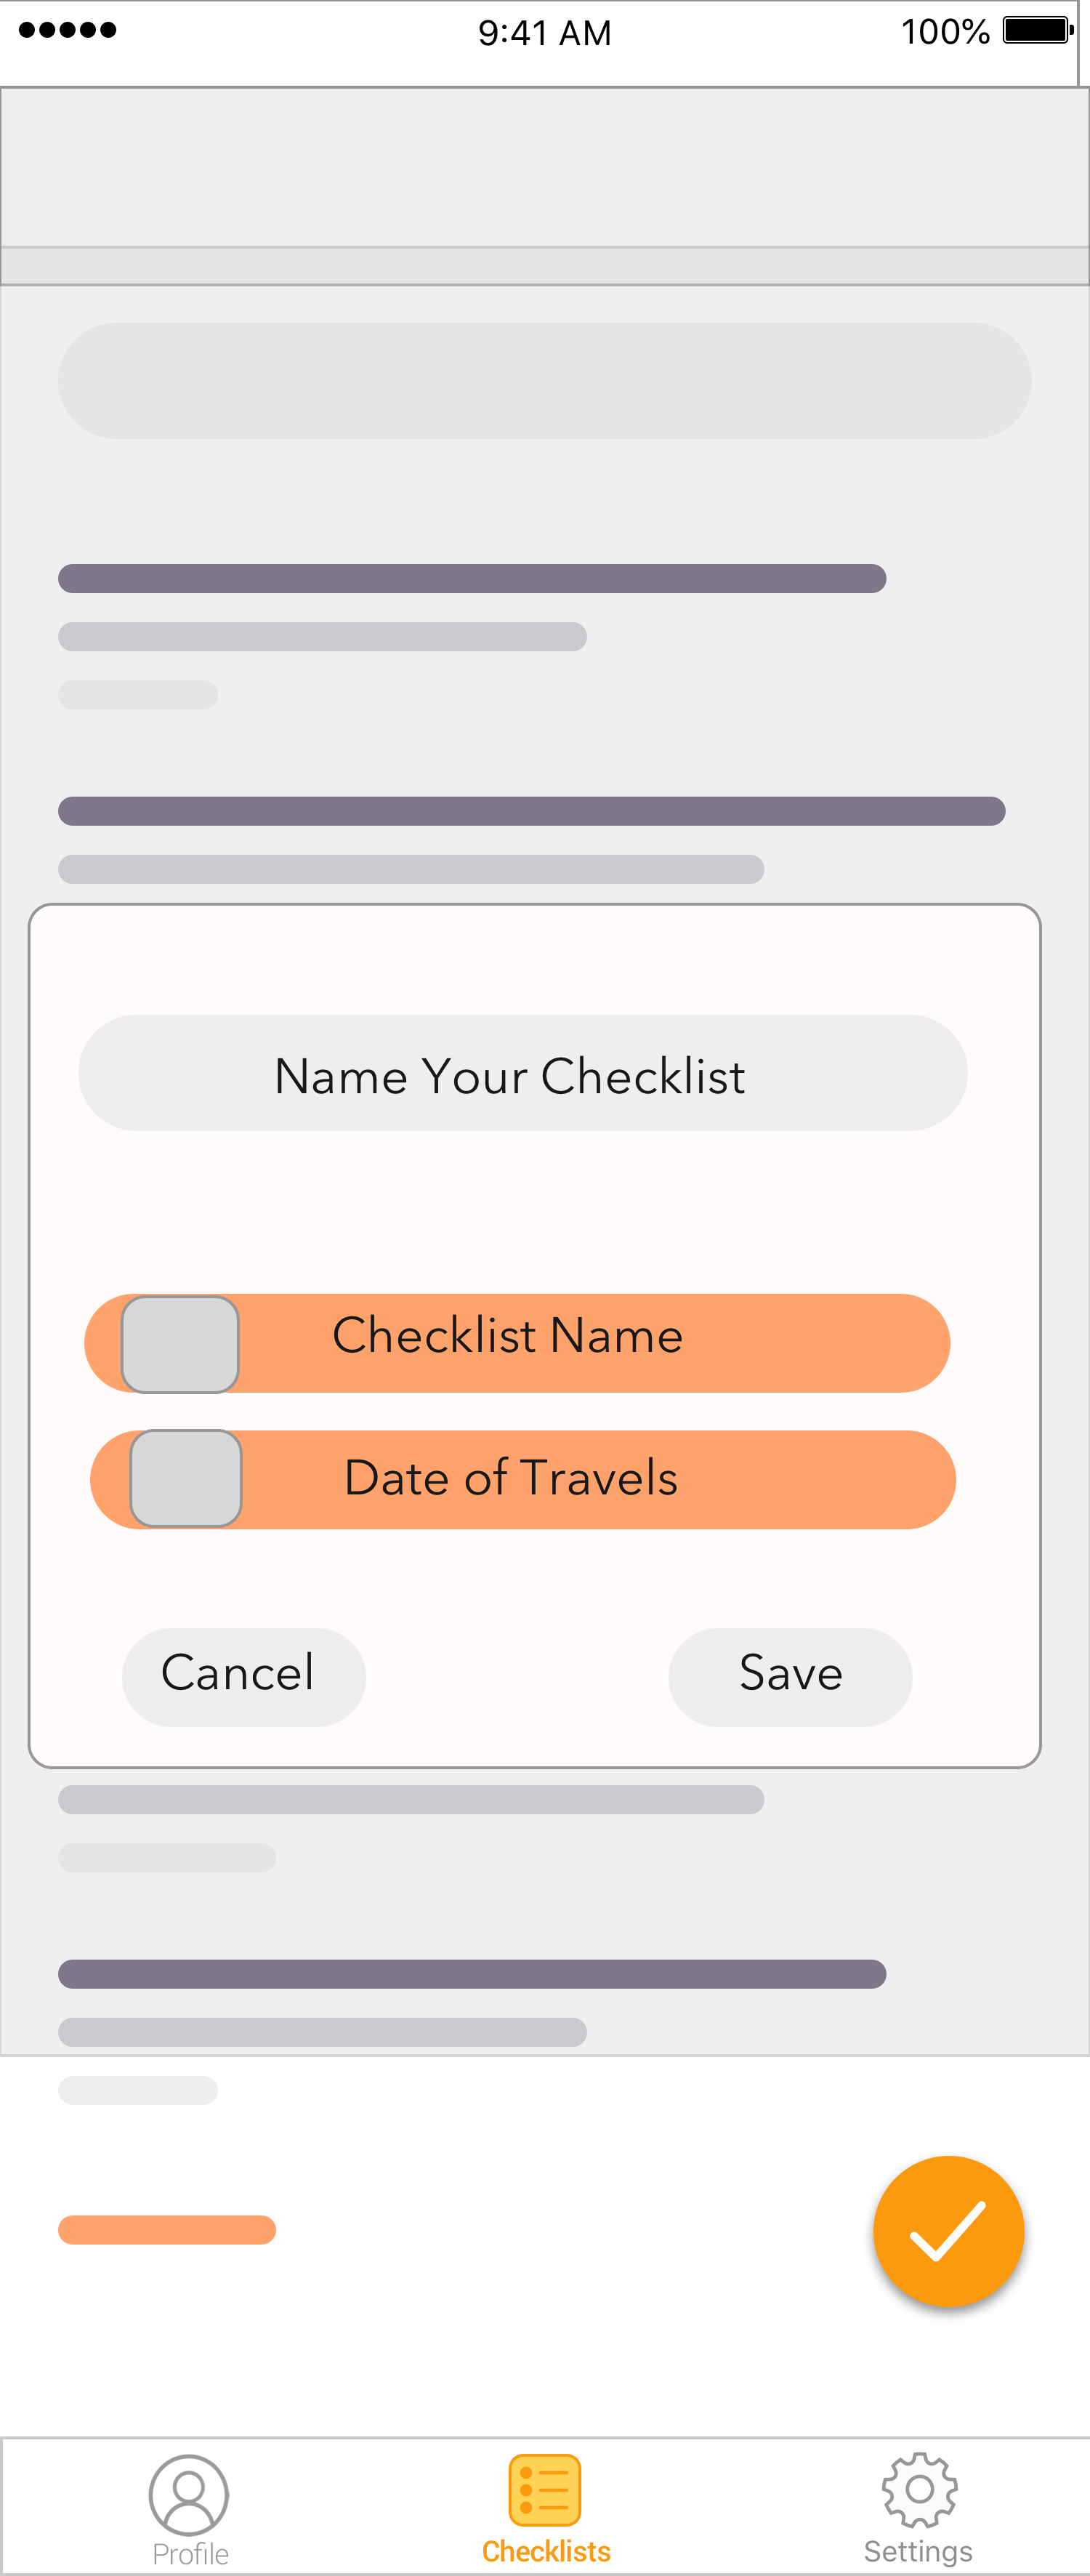 Add Checklist Name